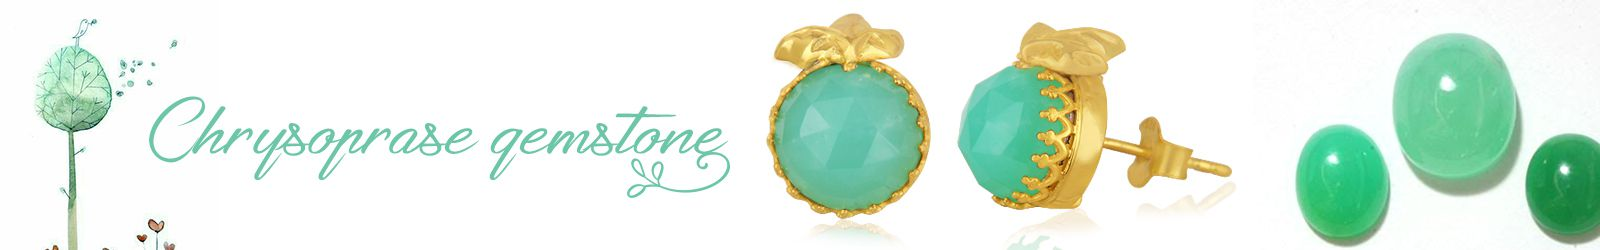 Online Natural Chrysoprase Silver Jewelry Store, Shop in Jaipur